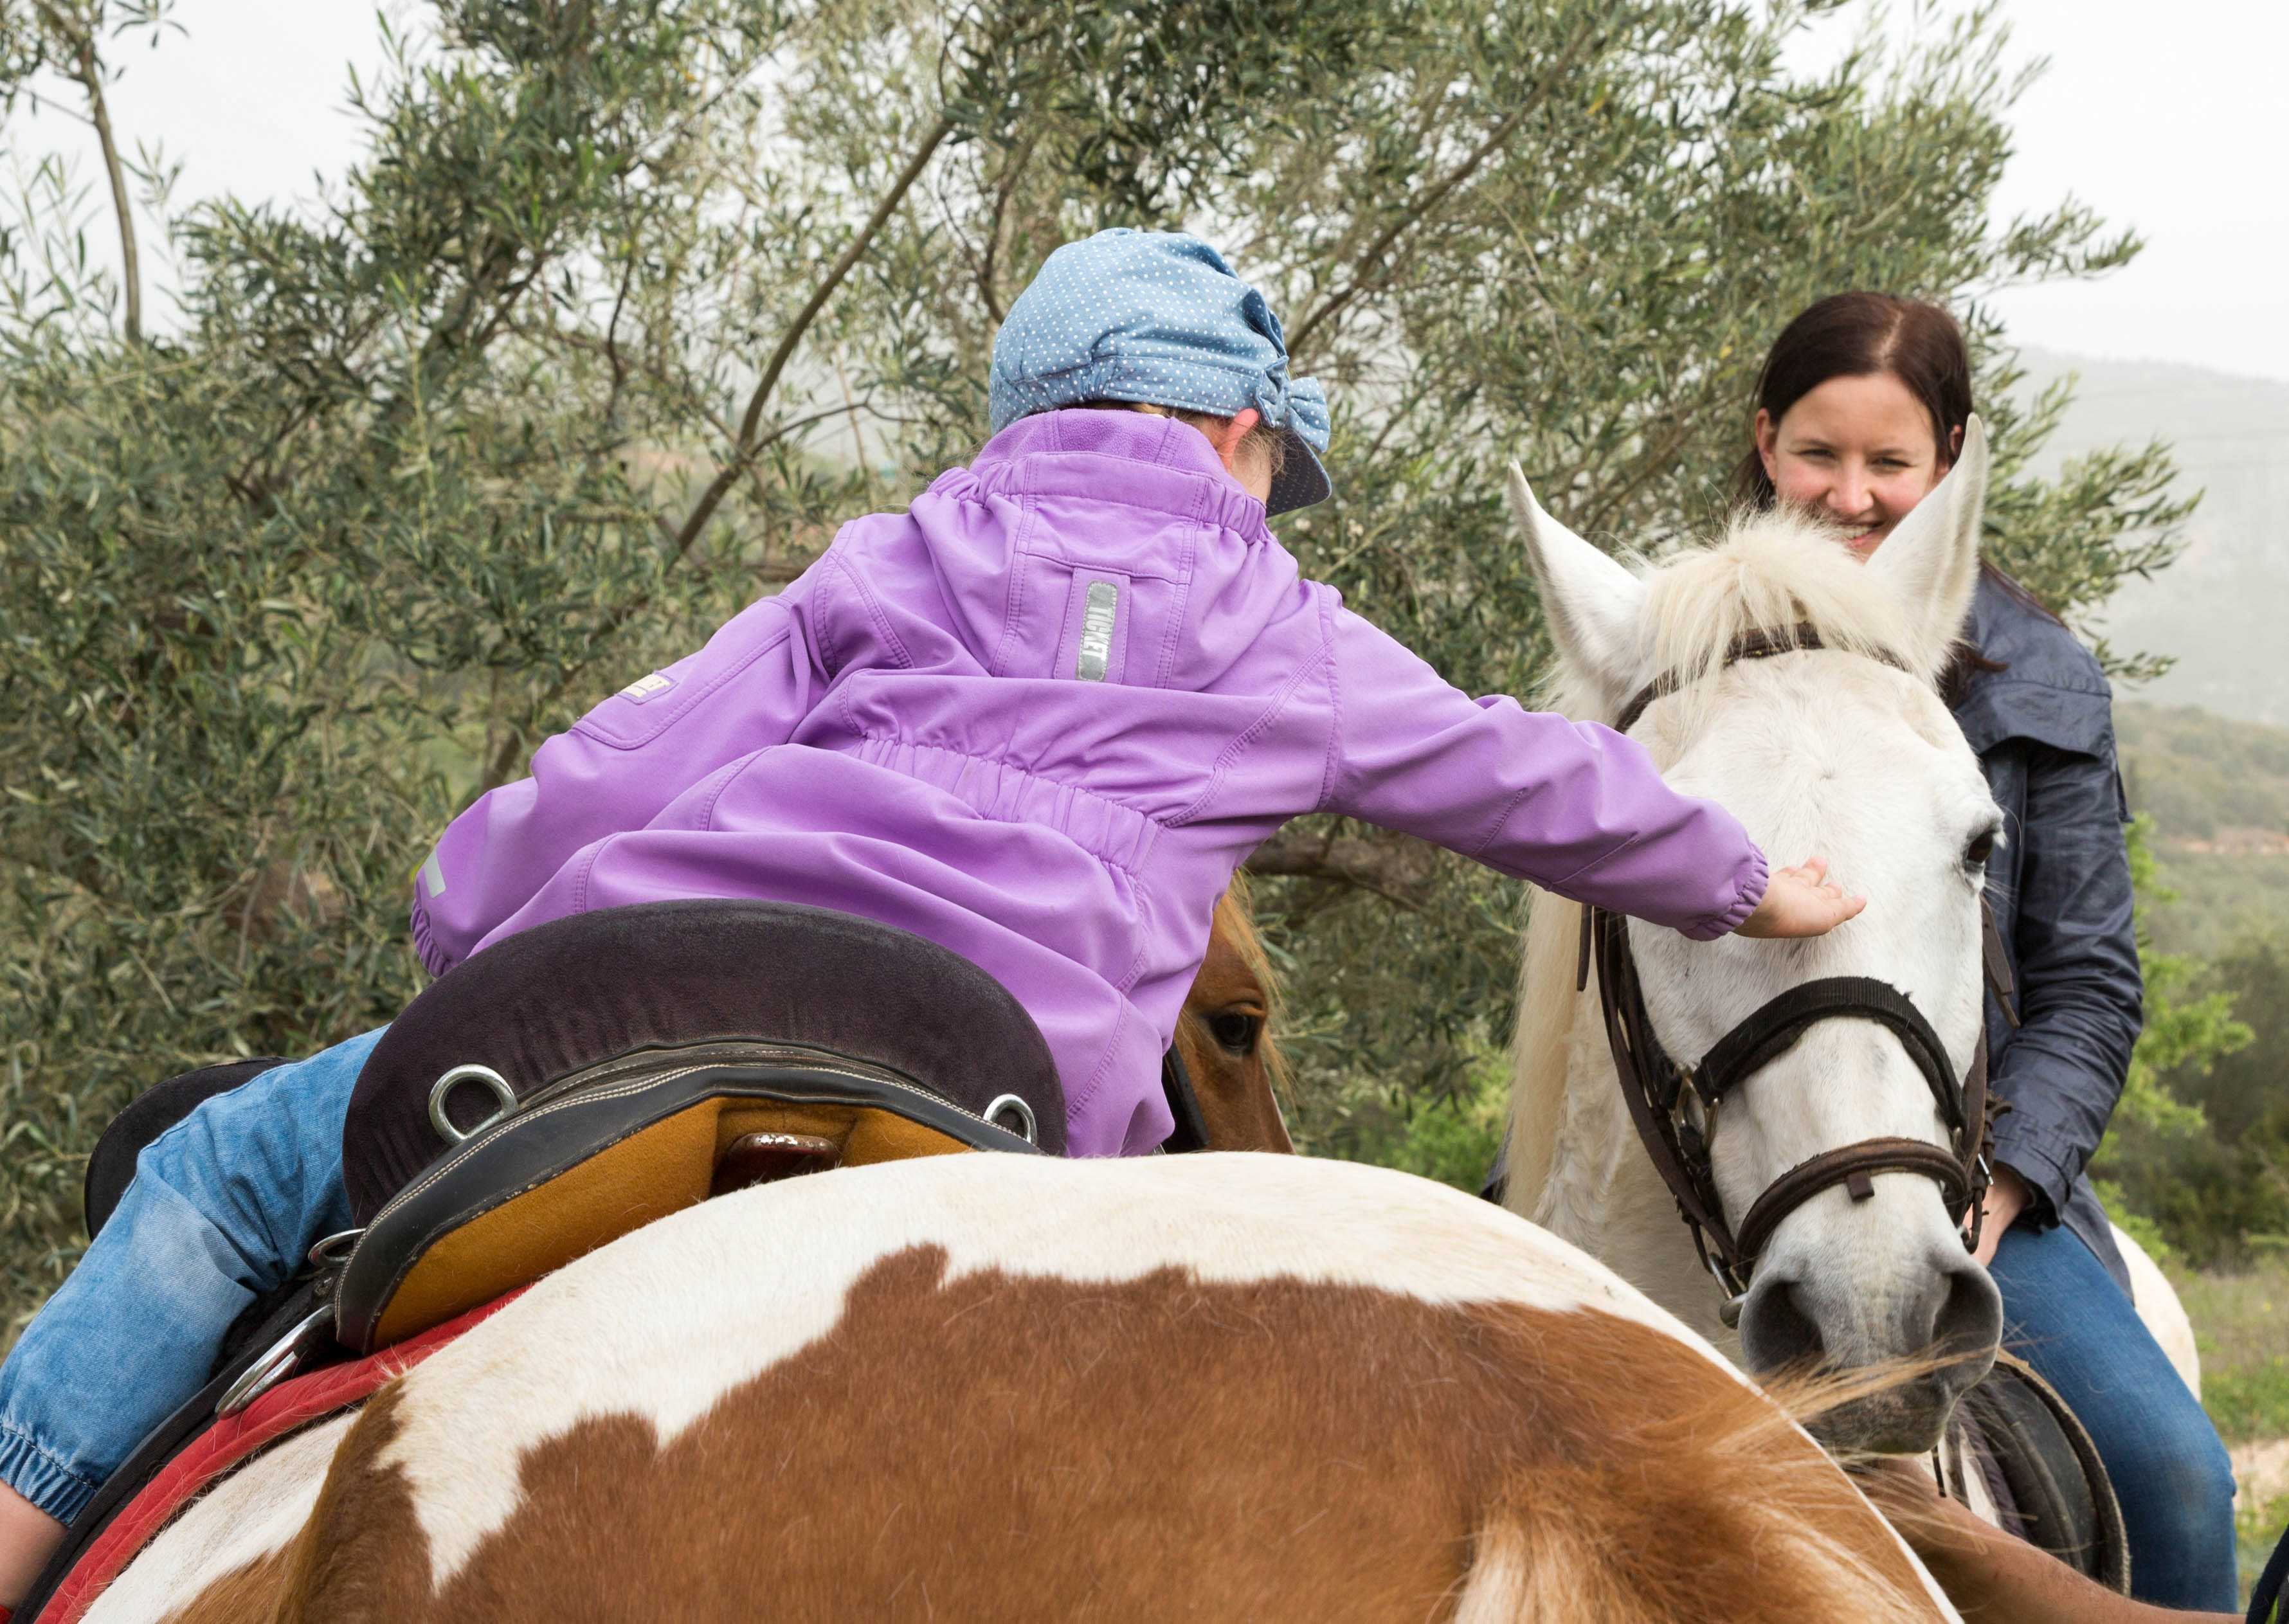 Horse riding, family friendly activity